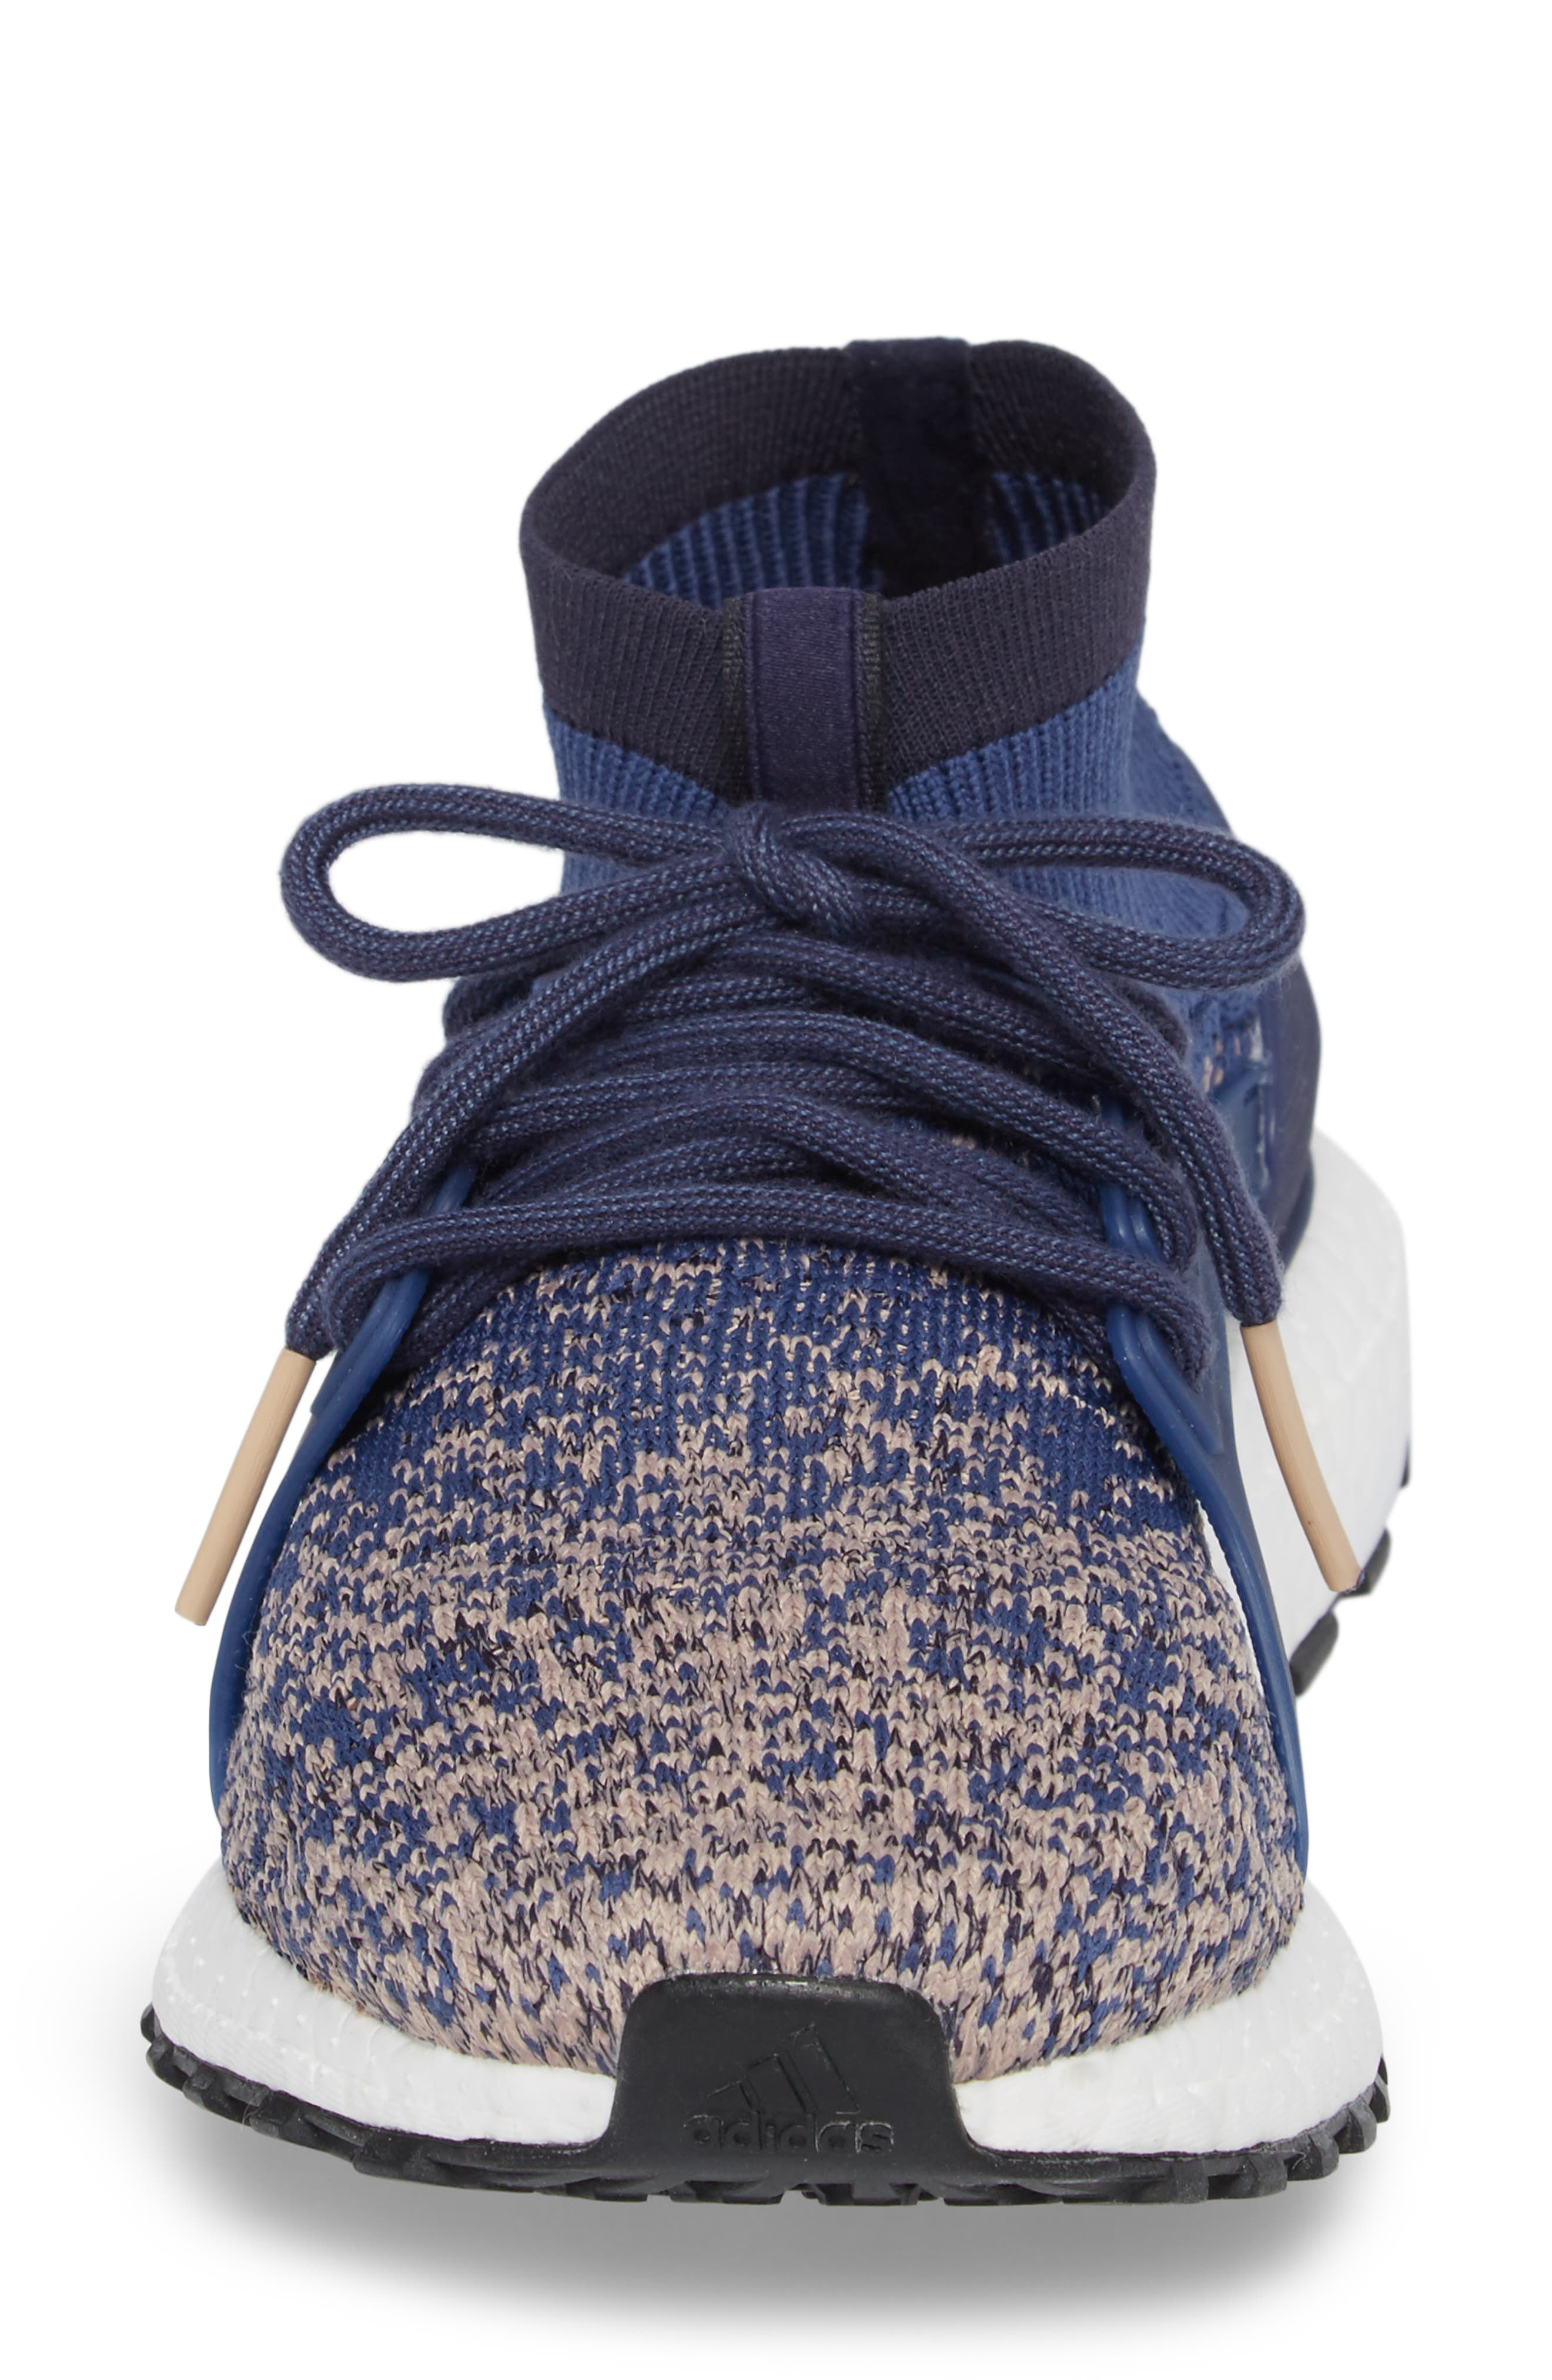 UltraBoost X All Terrain Water Resistant Running Shoe,                             Alternate thumbnail 4, color,                             Noble Indigo/ Noble Indigo